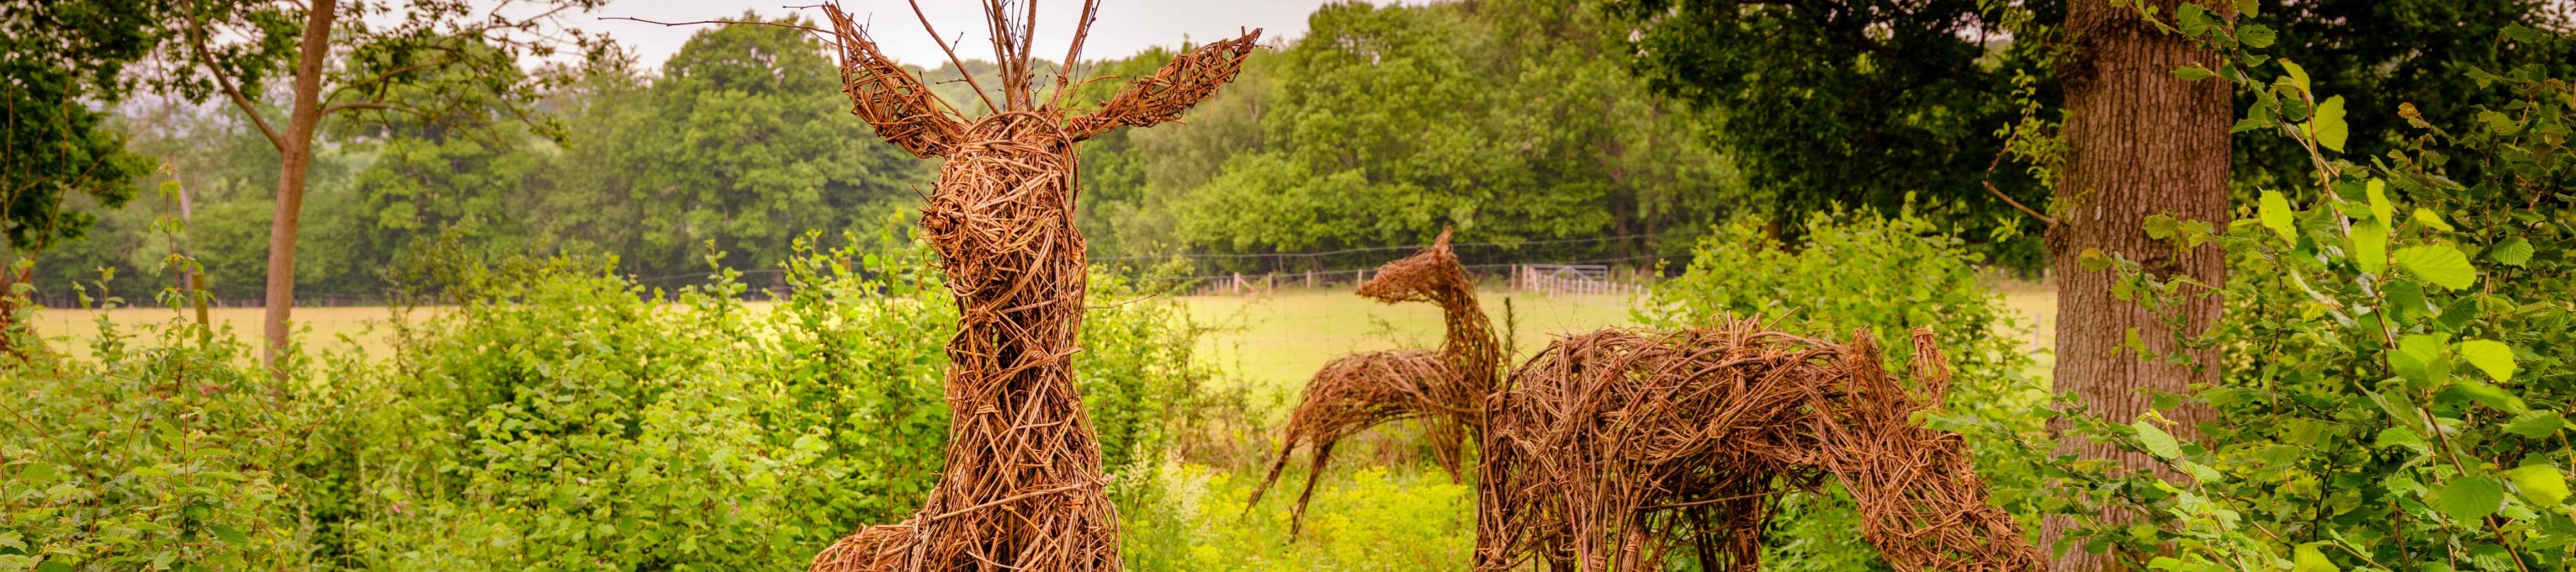 Willow deer making